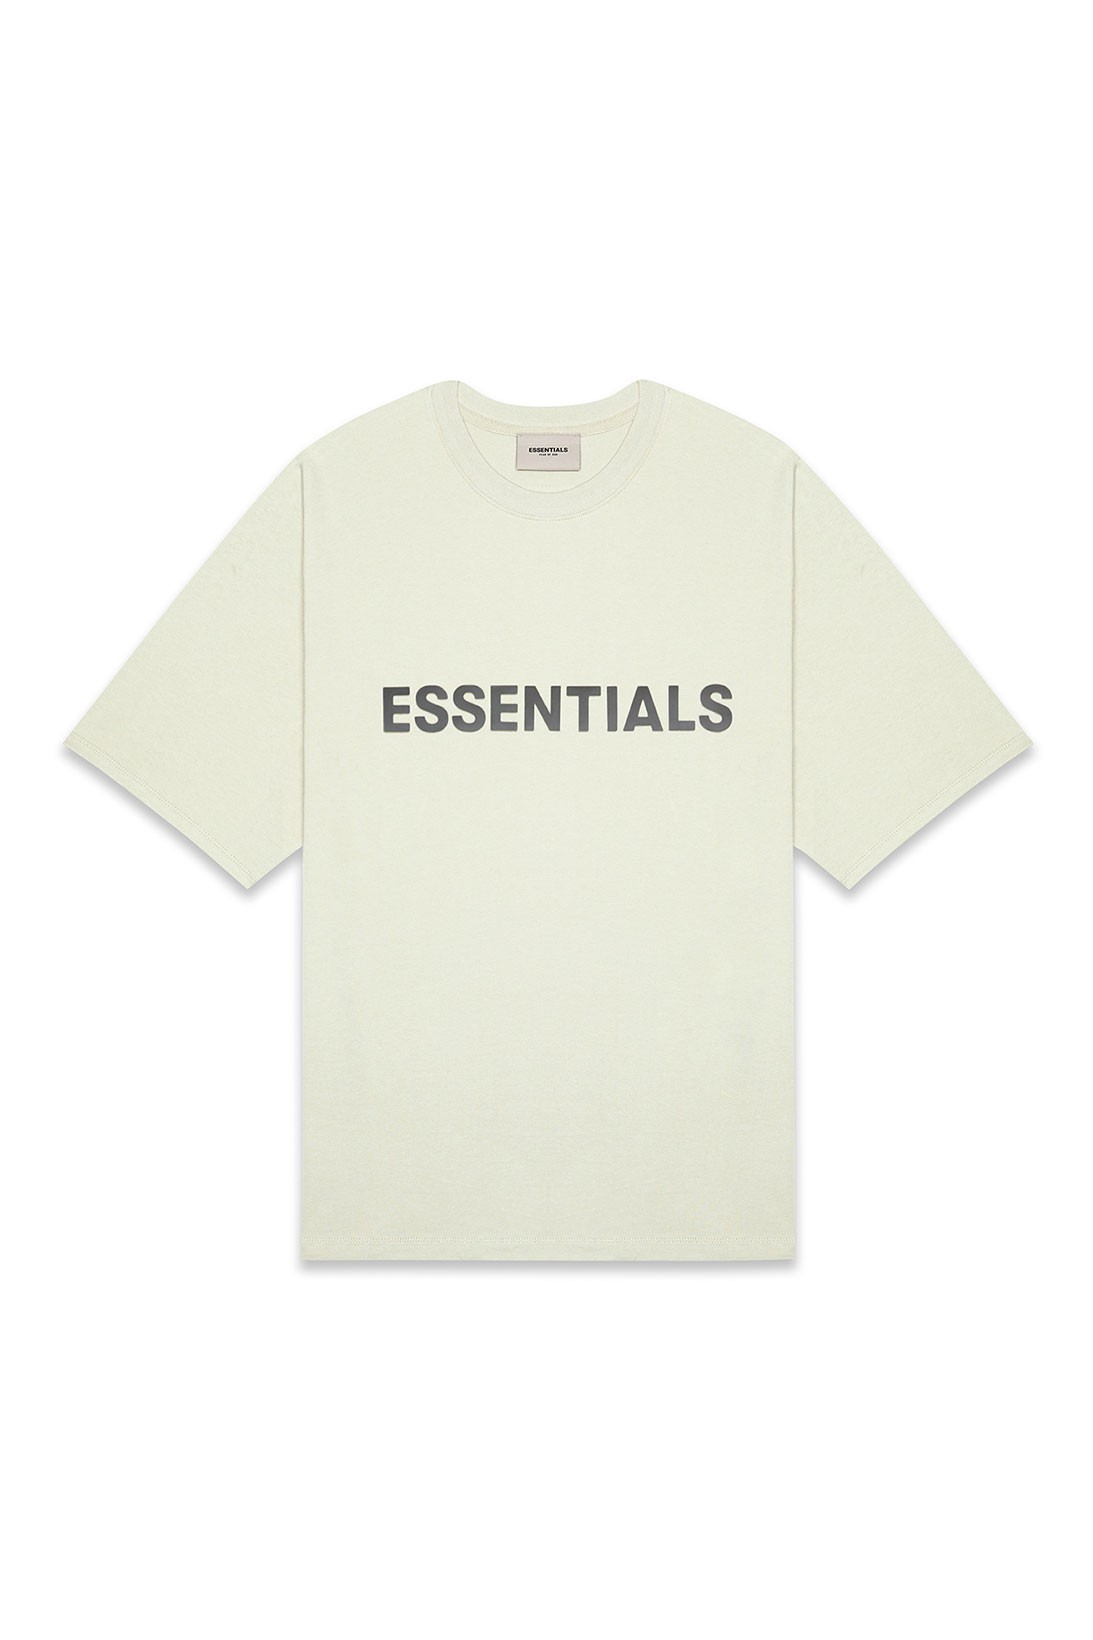 Fear of God ESSENTIALS to Drop Items